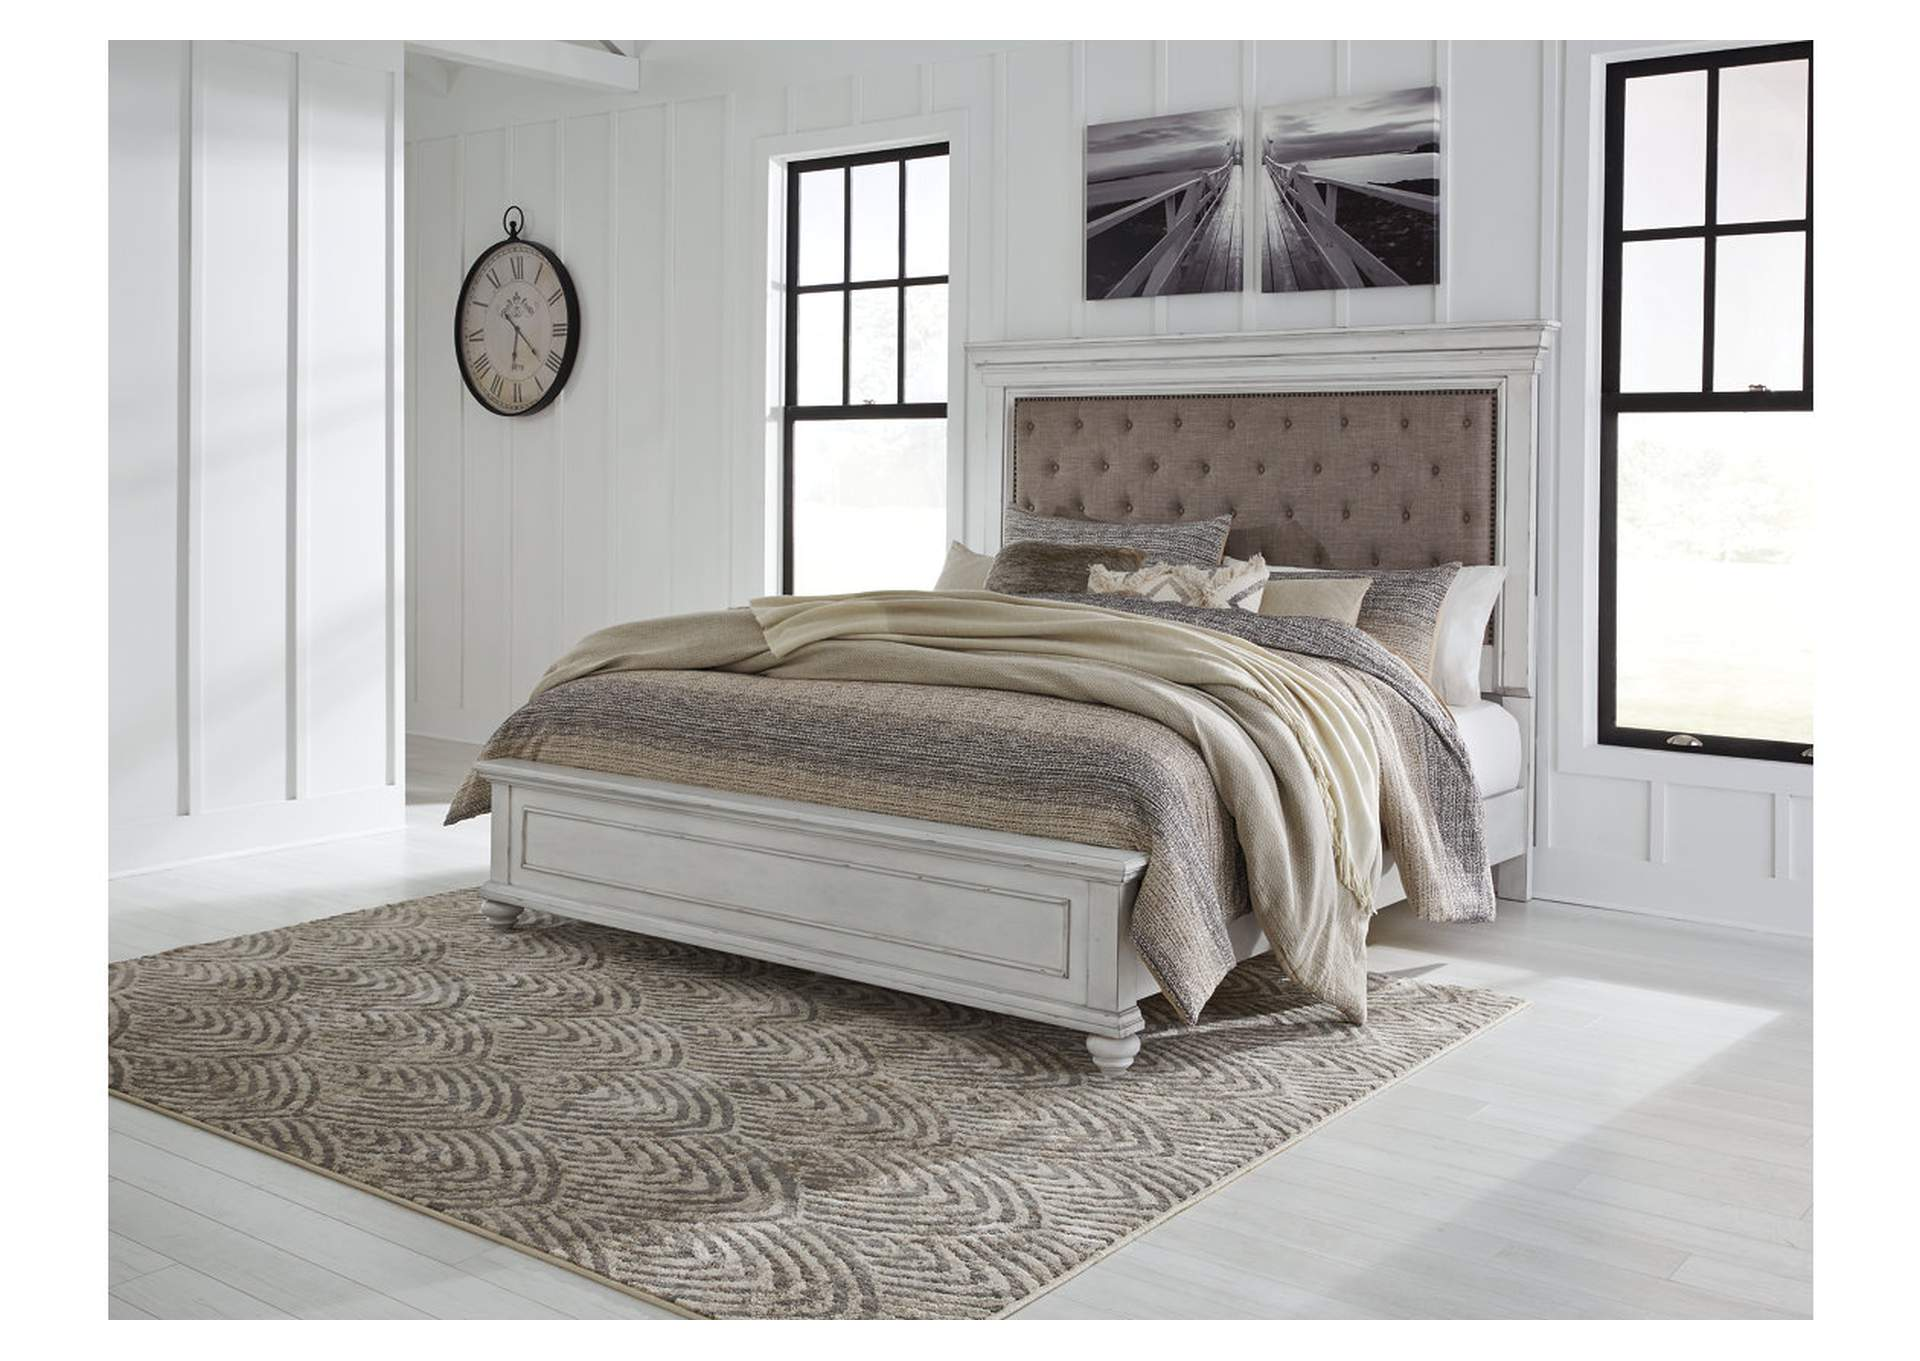 Kanwyn Whitewash Queen Upholstered Panel Bed,Benchcraft